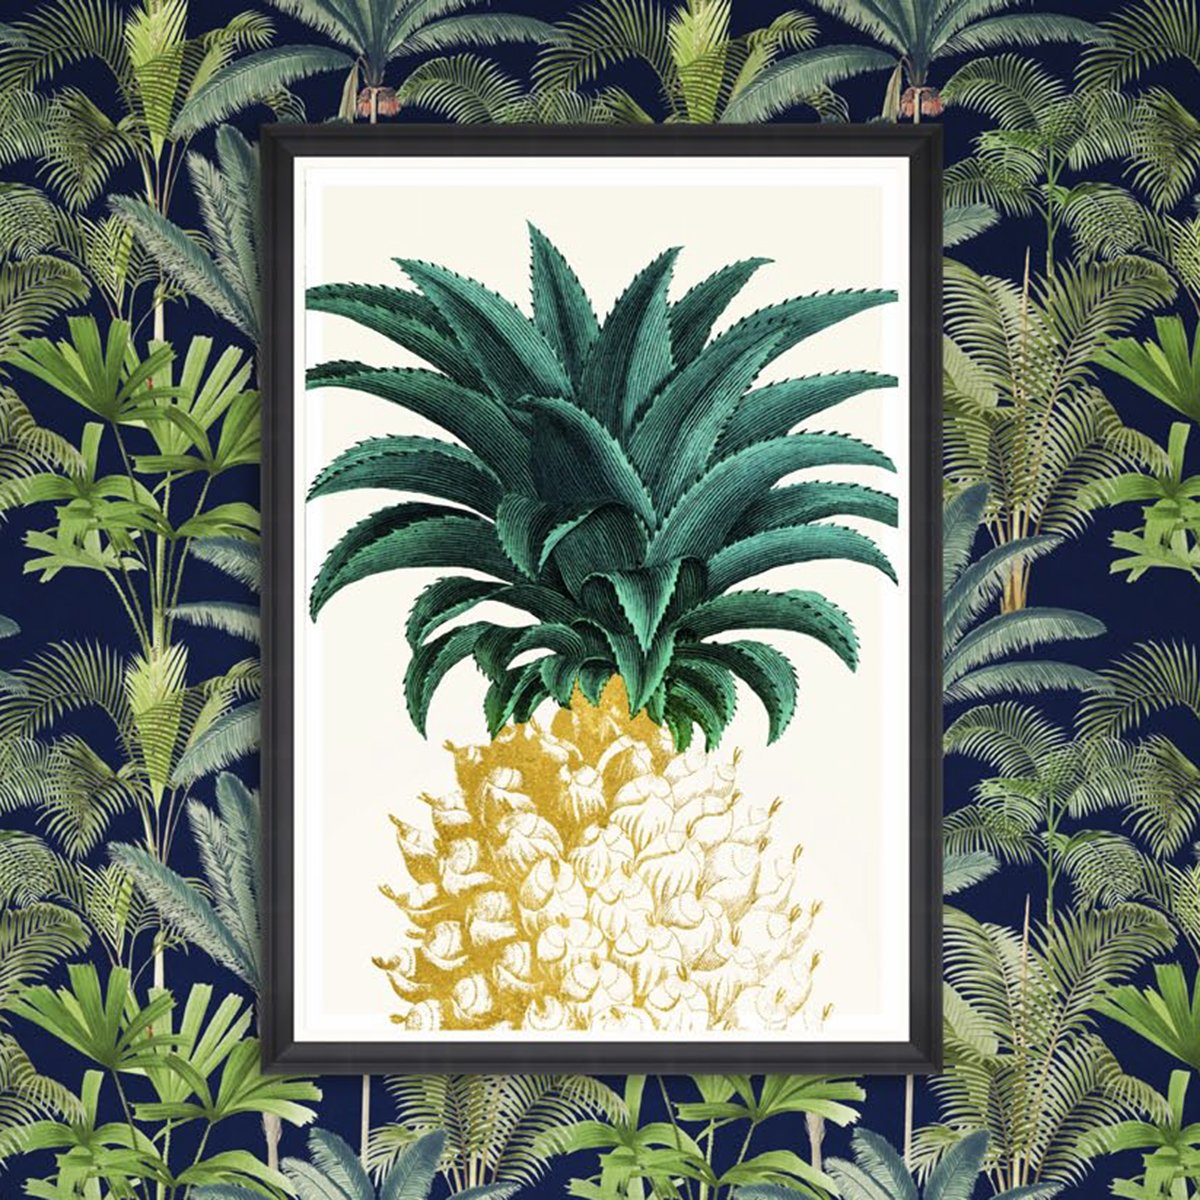 Mind the Gap Pineapple Sweet Framed Art FA12764